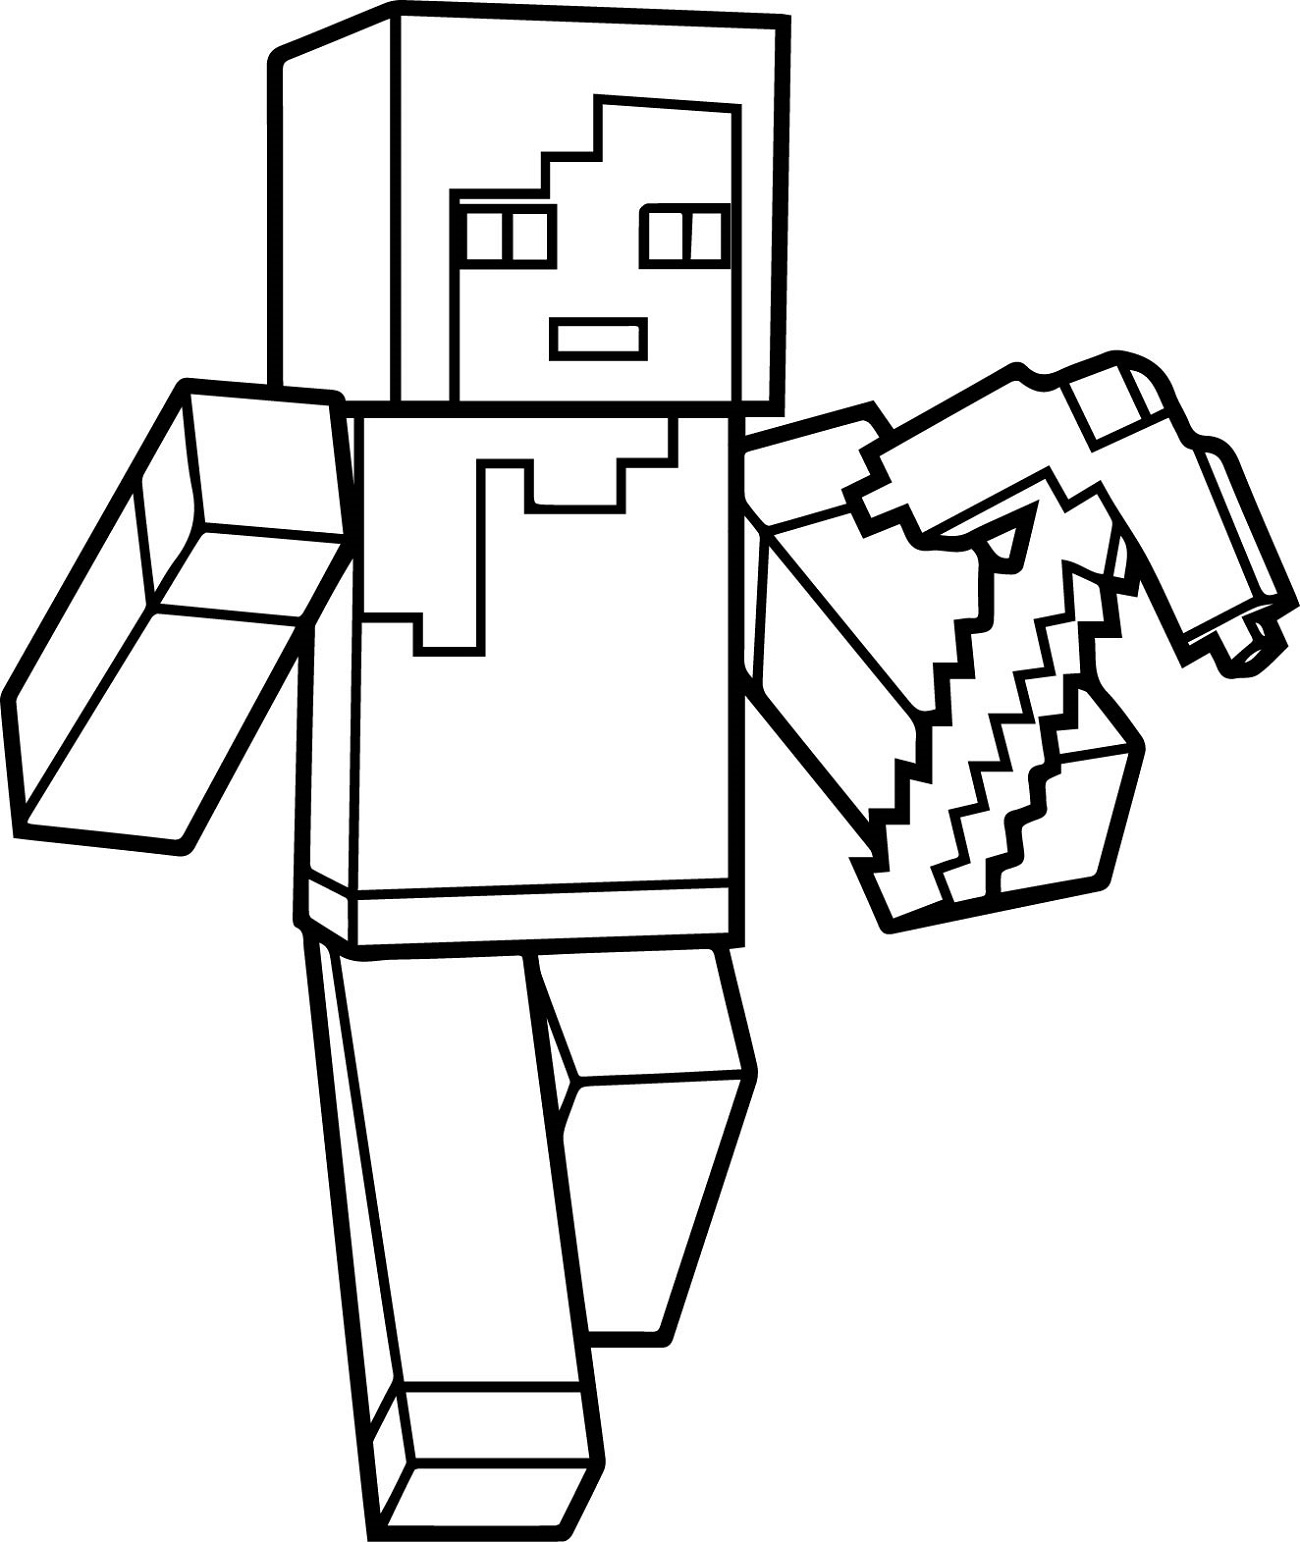 Coloring Pages to Print Minecraft